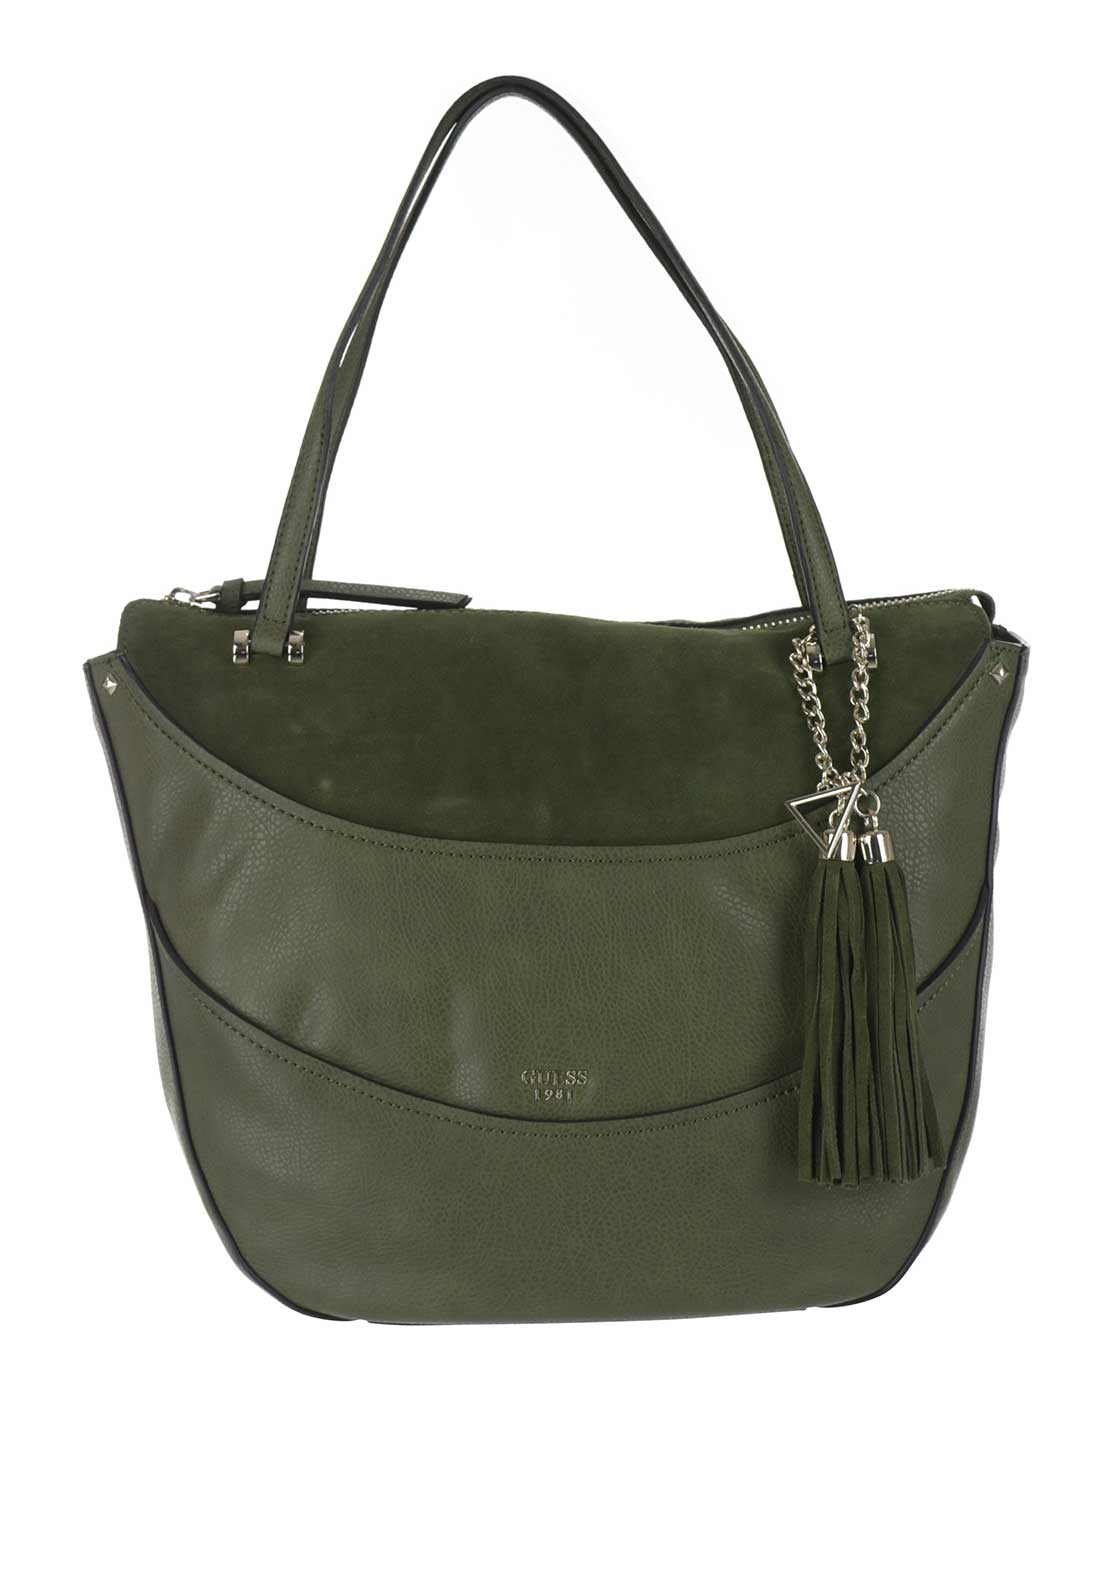 Guess Solene Shoulder Bag, Olive